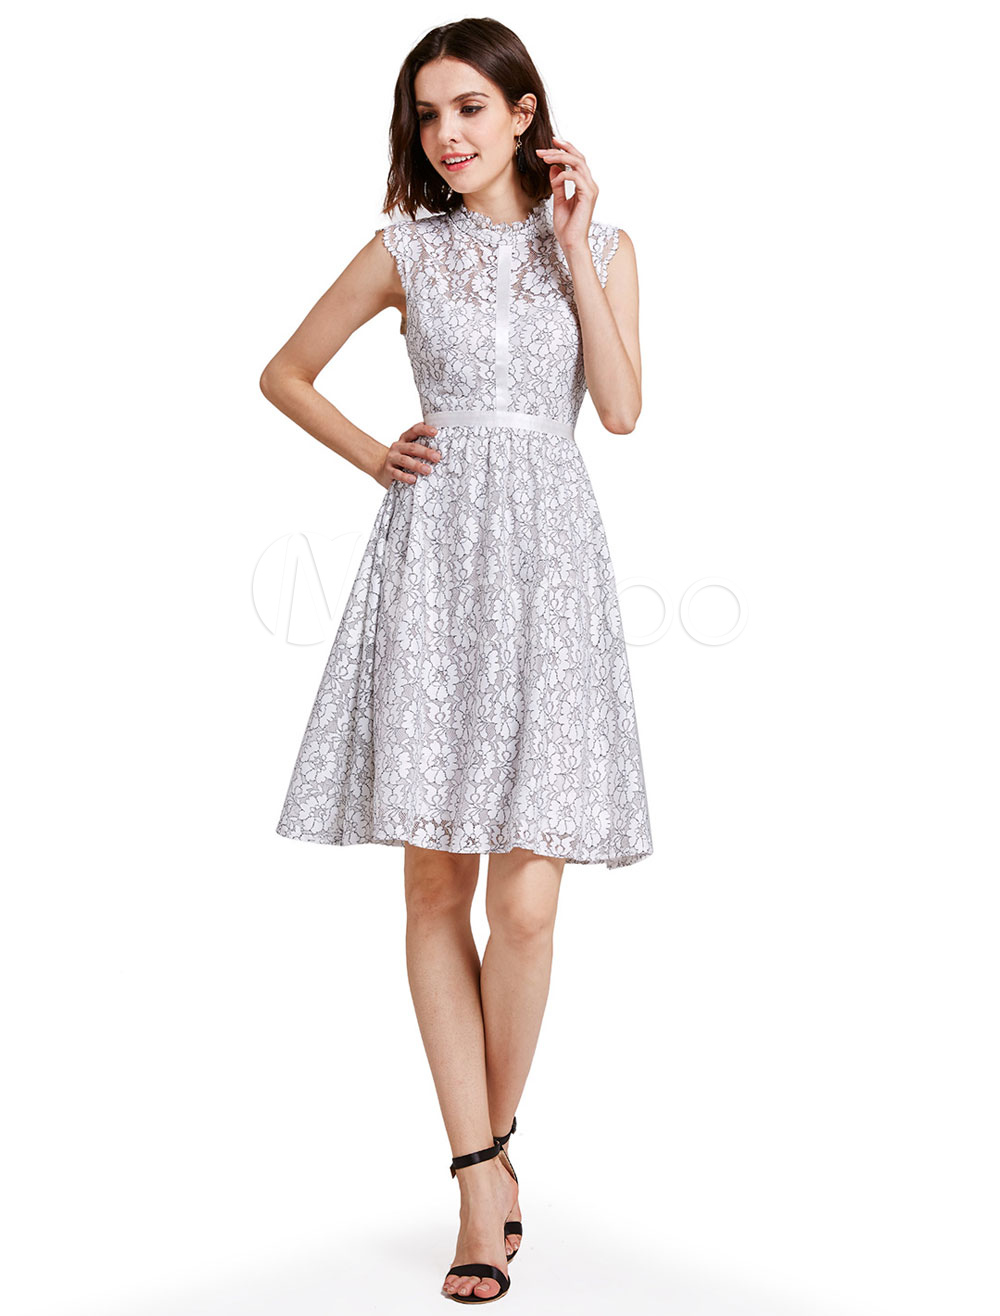 White Cocktail Dress Lace Round Neck Sleeveless Stand Collar Backless A Line Mini Party Dresses (Wedding Cocktail Dresses) photo